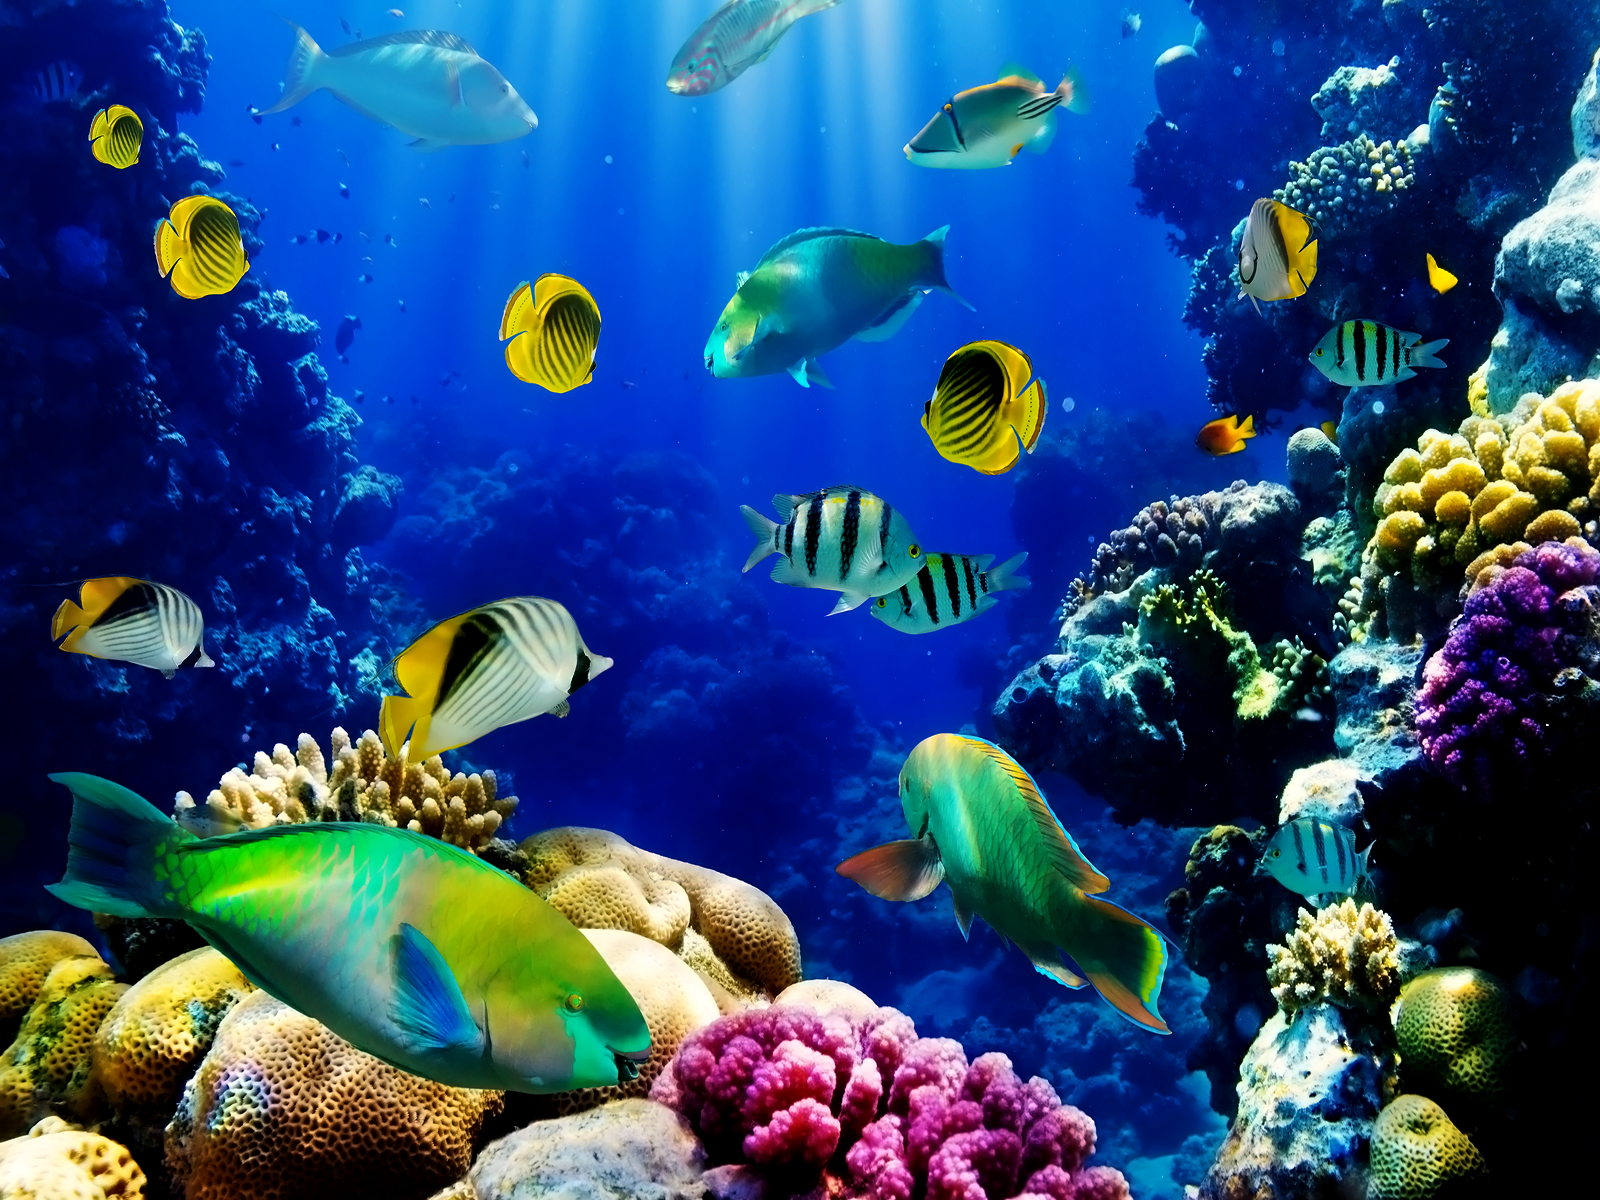 Wallpaper Of Fish Aquarium